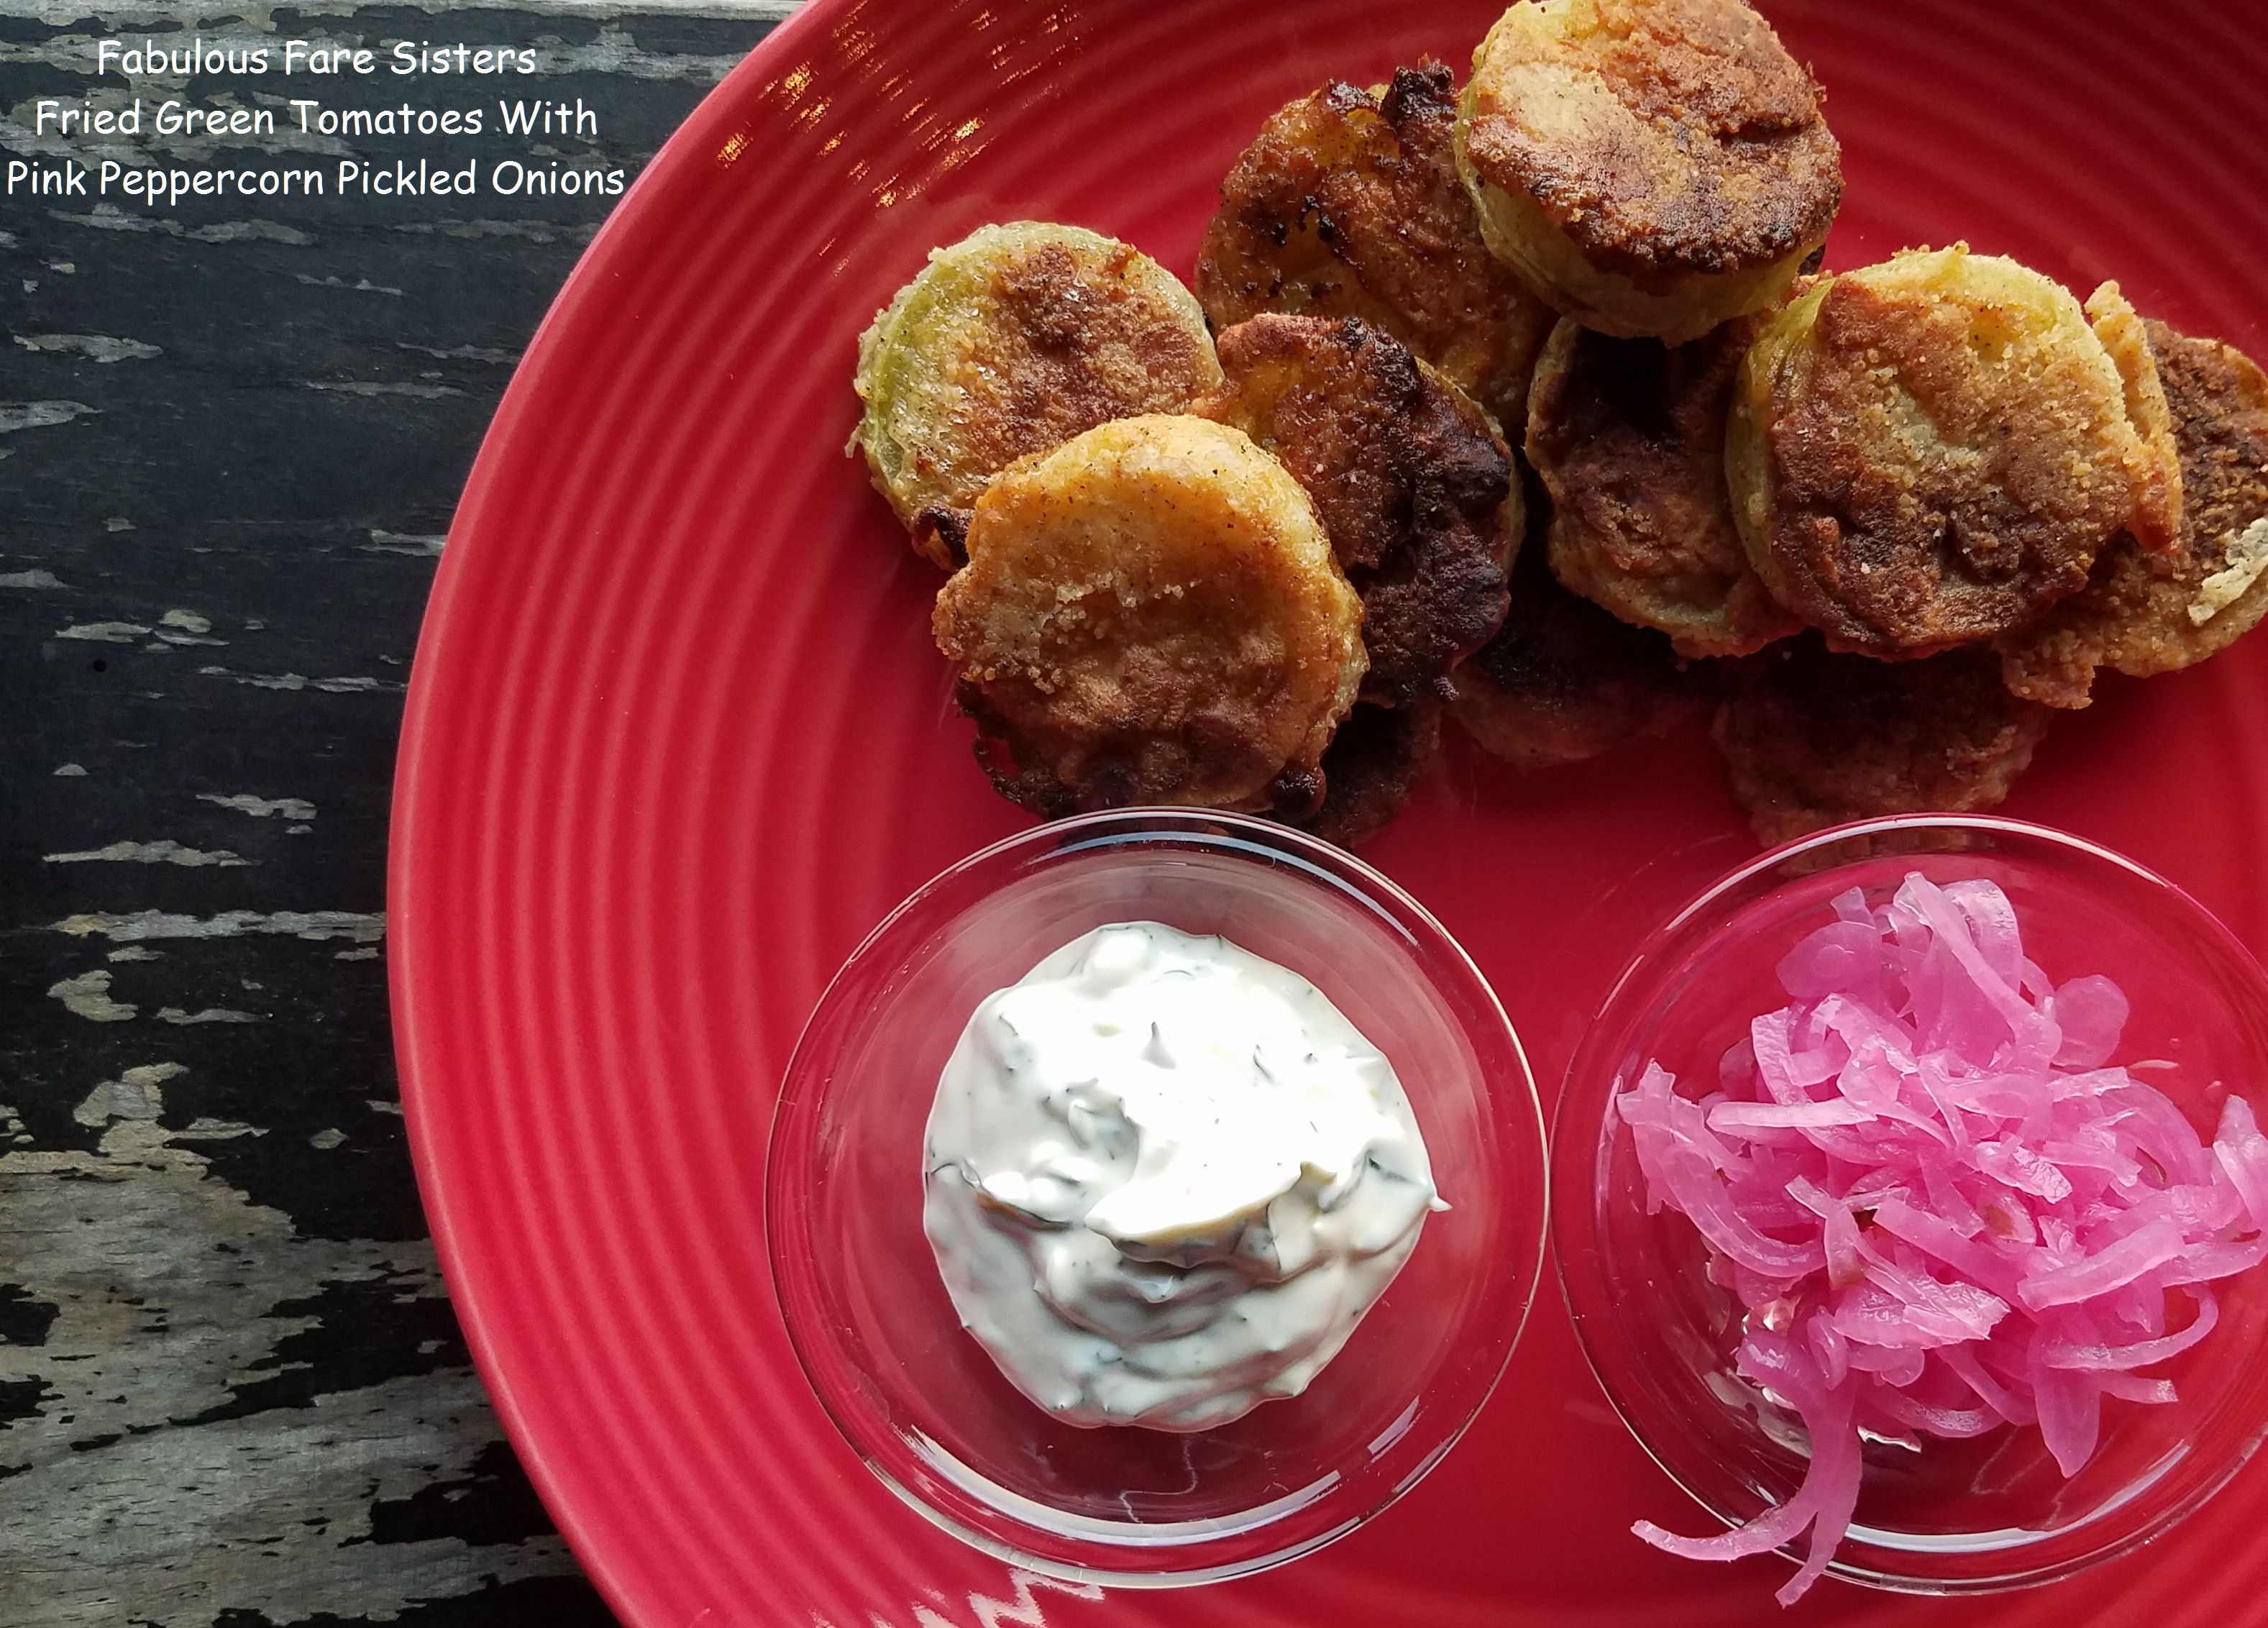 Fried Green Tomatoes With Pink Peppercorn Pickled Onions